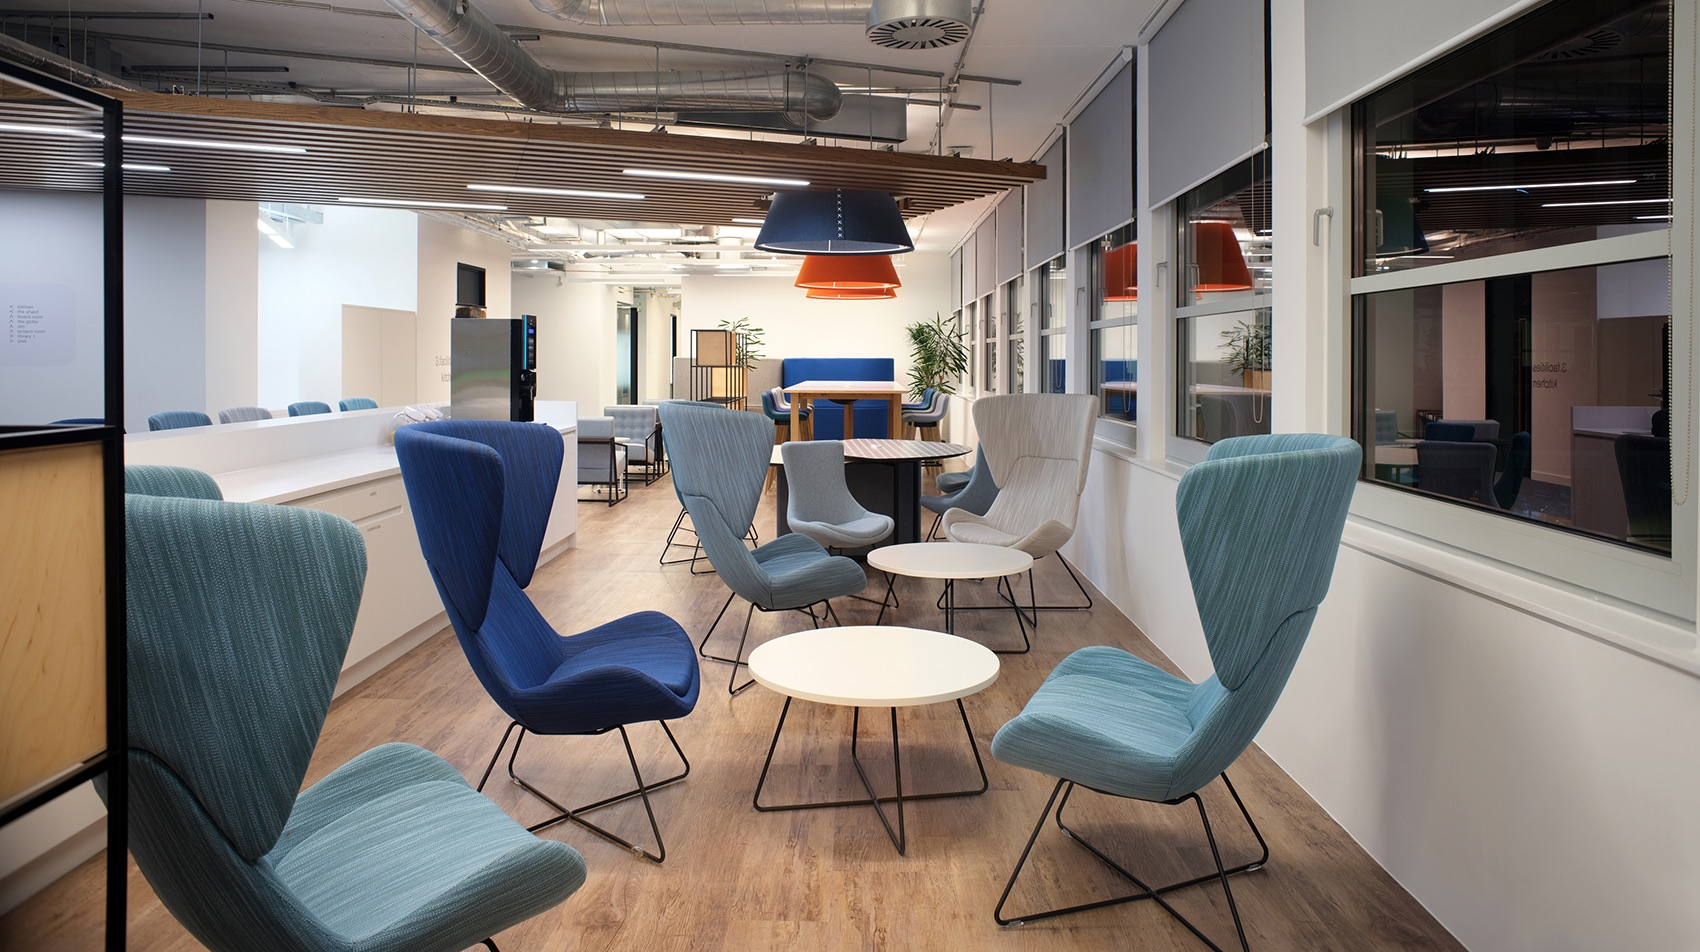 sage-publishing-london-office-14